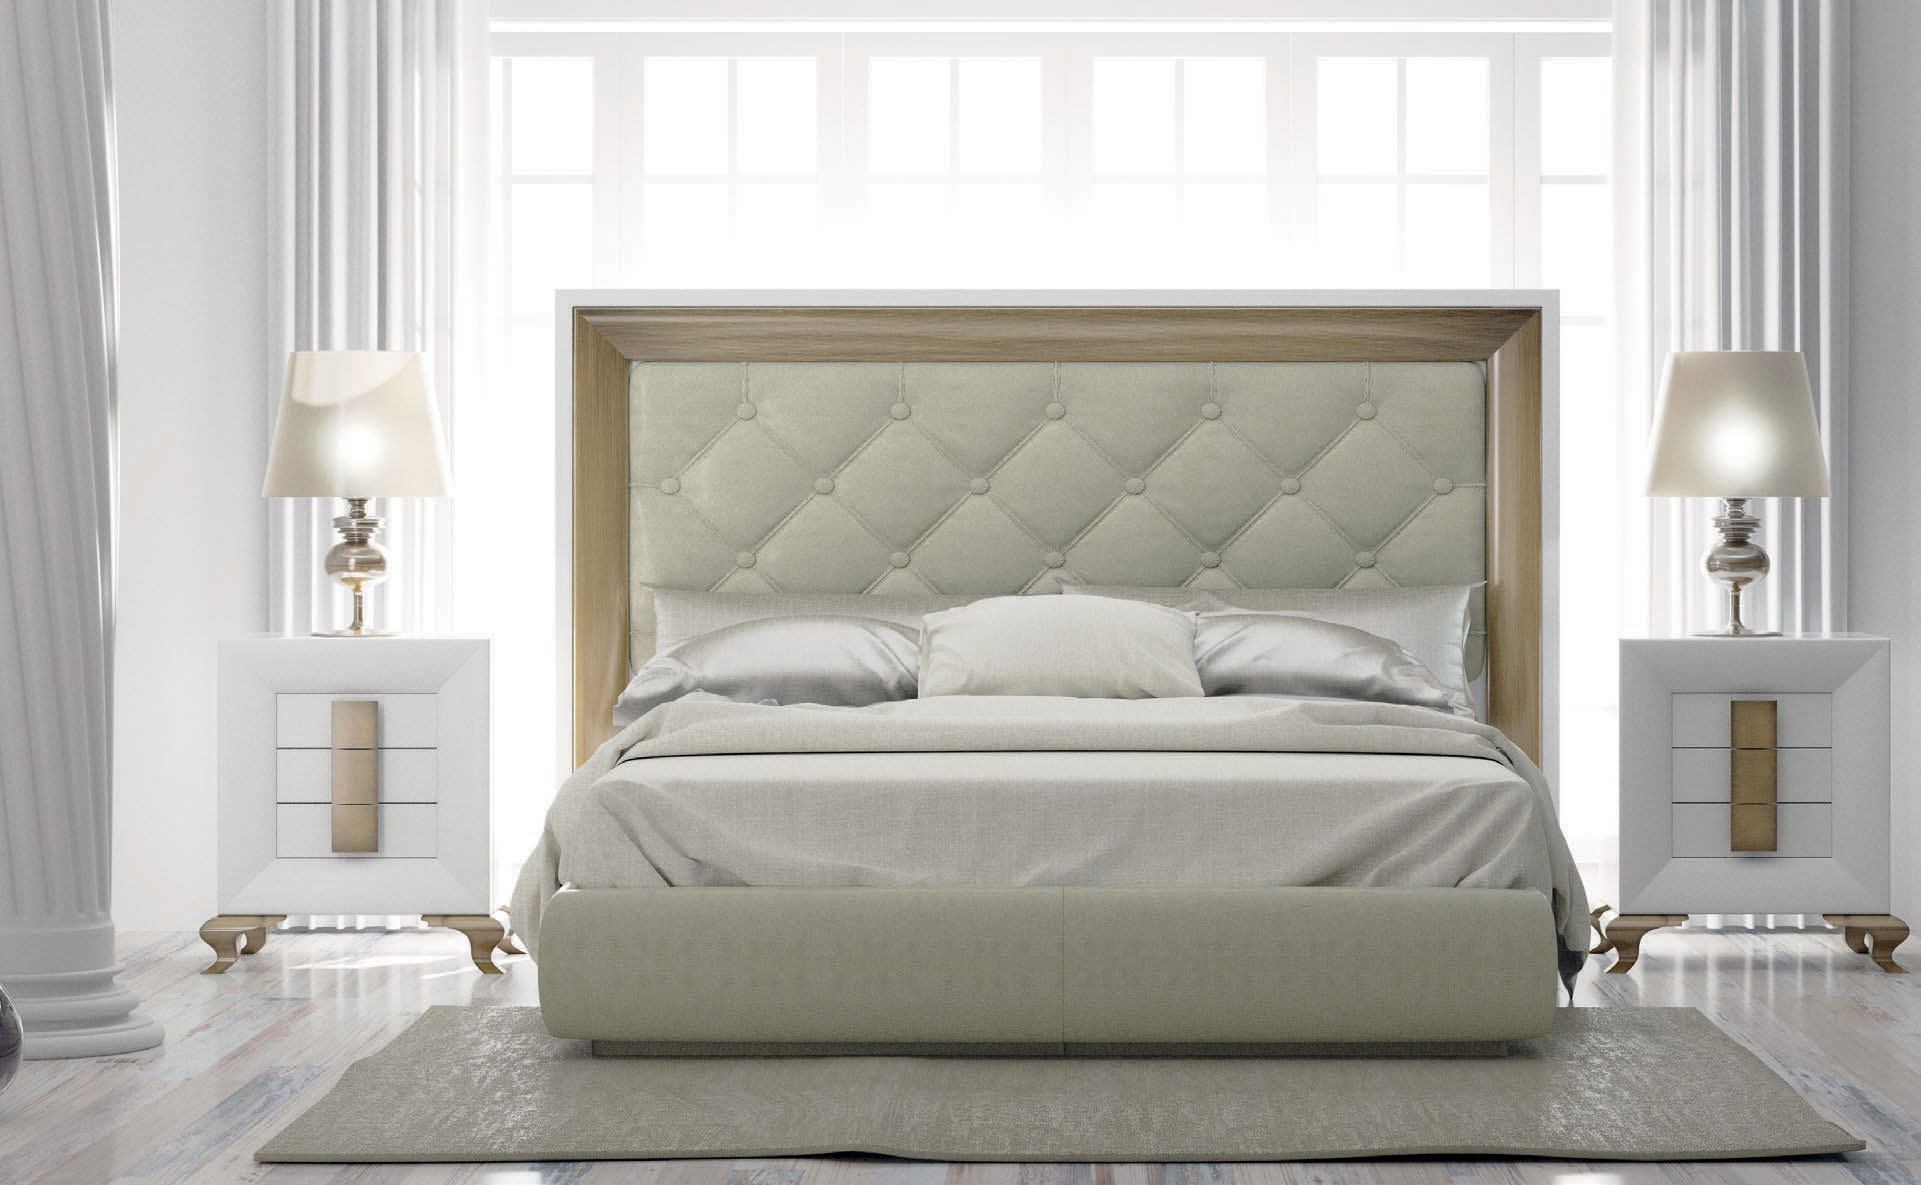 Brands Franco Furniture Bedrooms vol2, Spain DOR 139